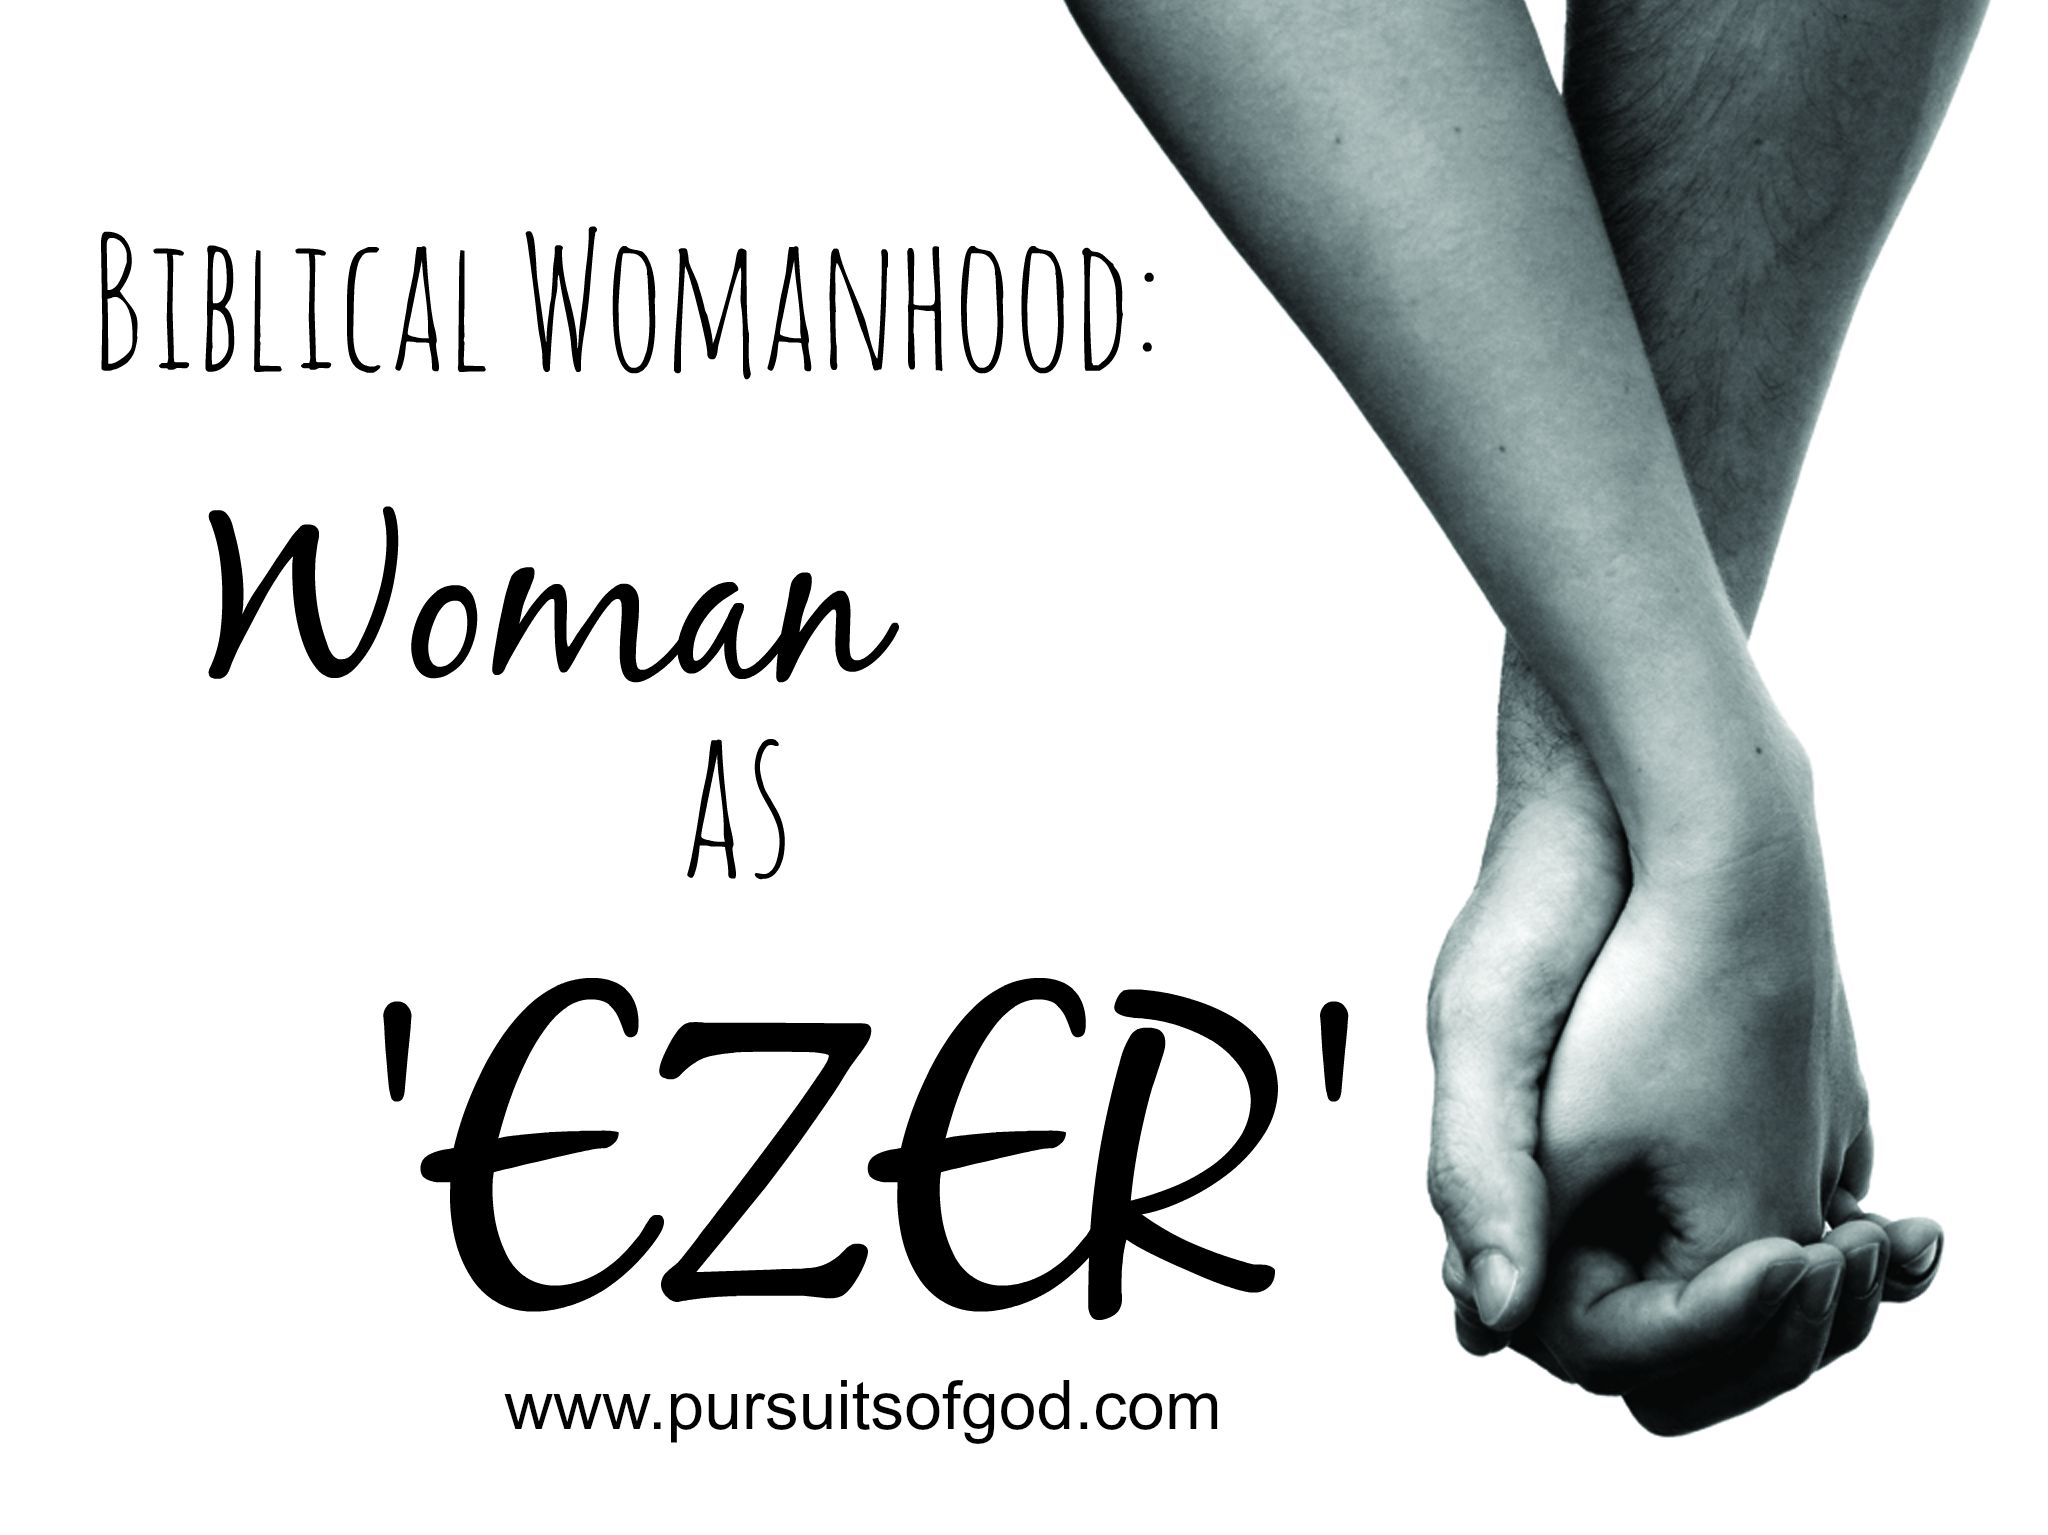 Biblical Womanhood: Woman as Ezer